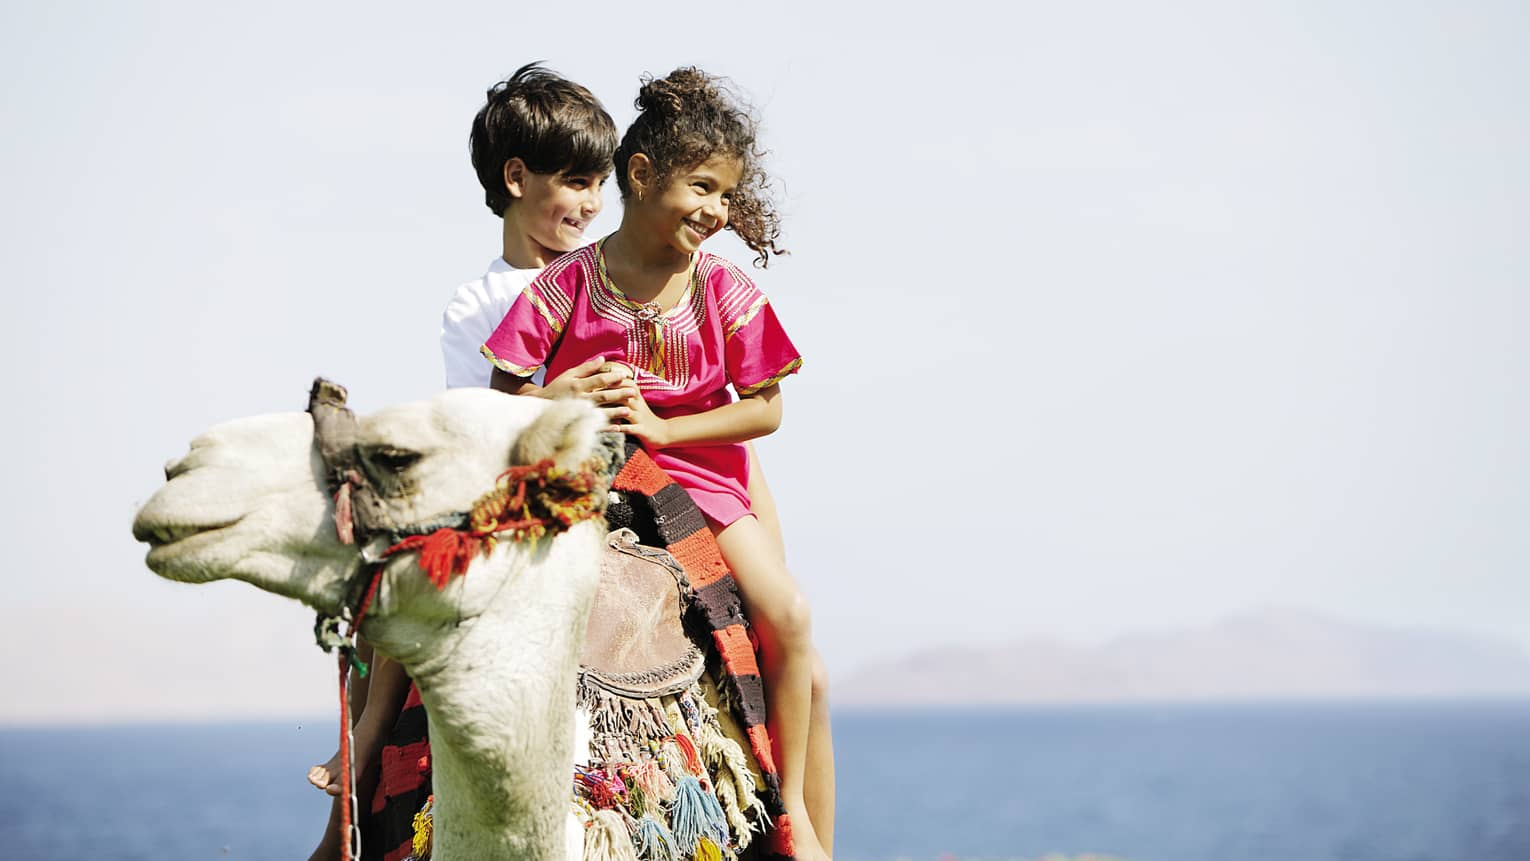 Two smiling children riding on camel